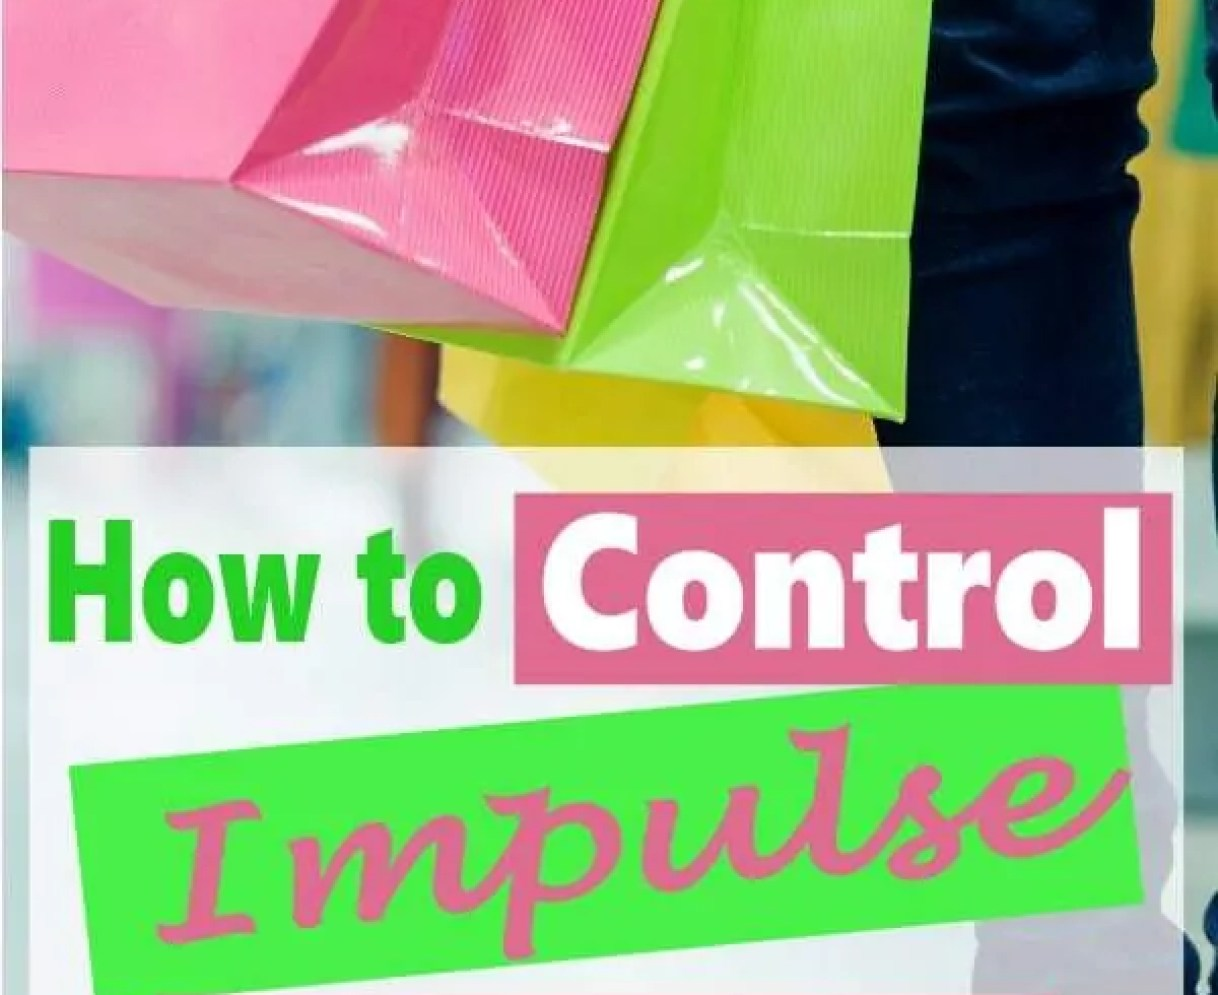 How to control impulse buying